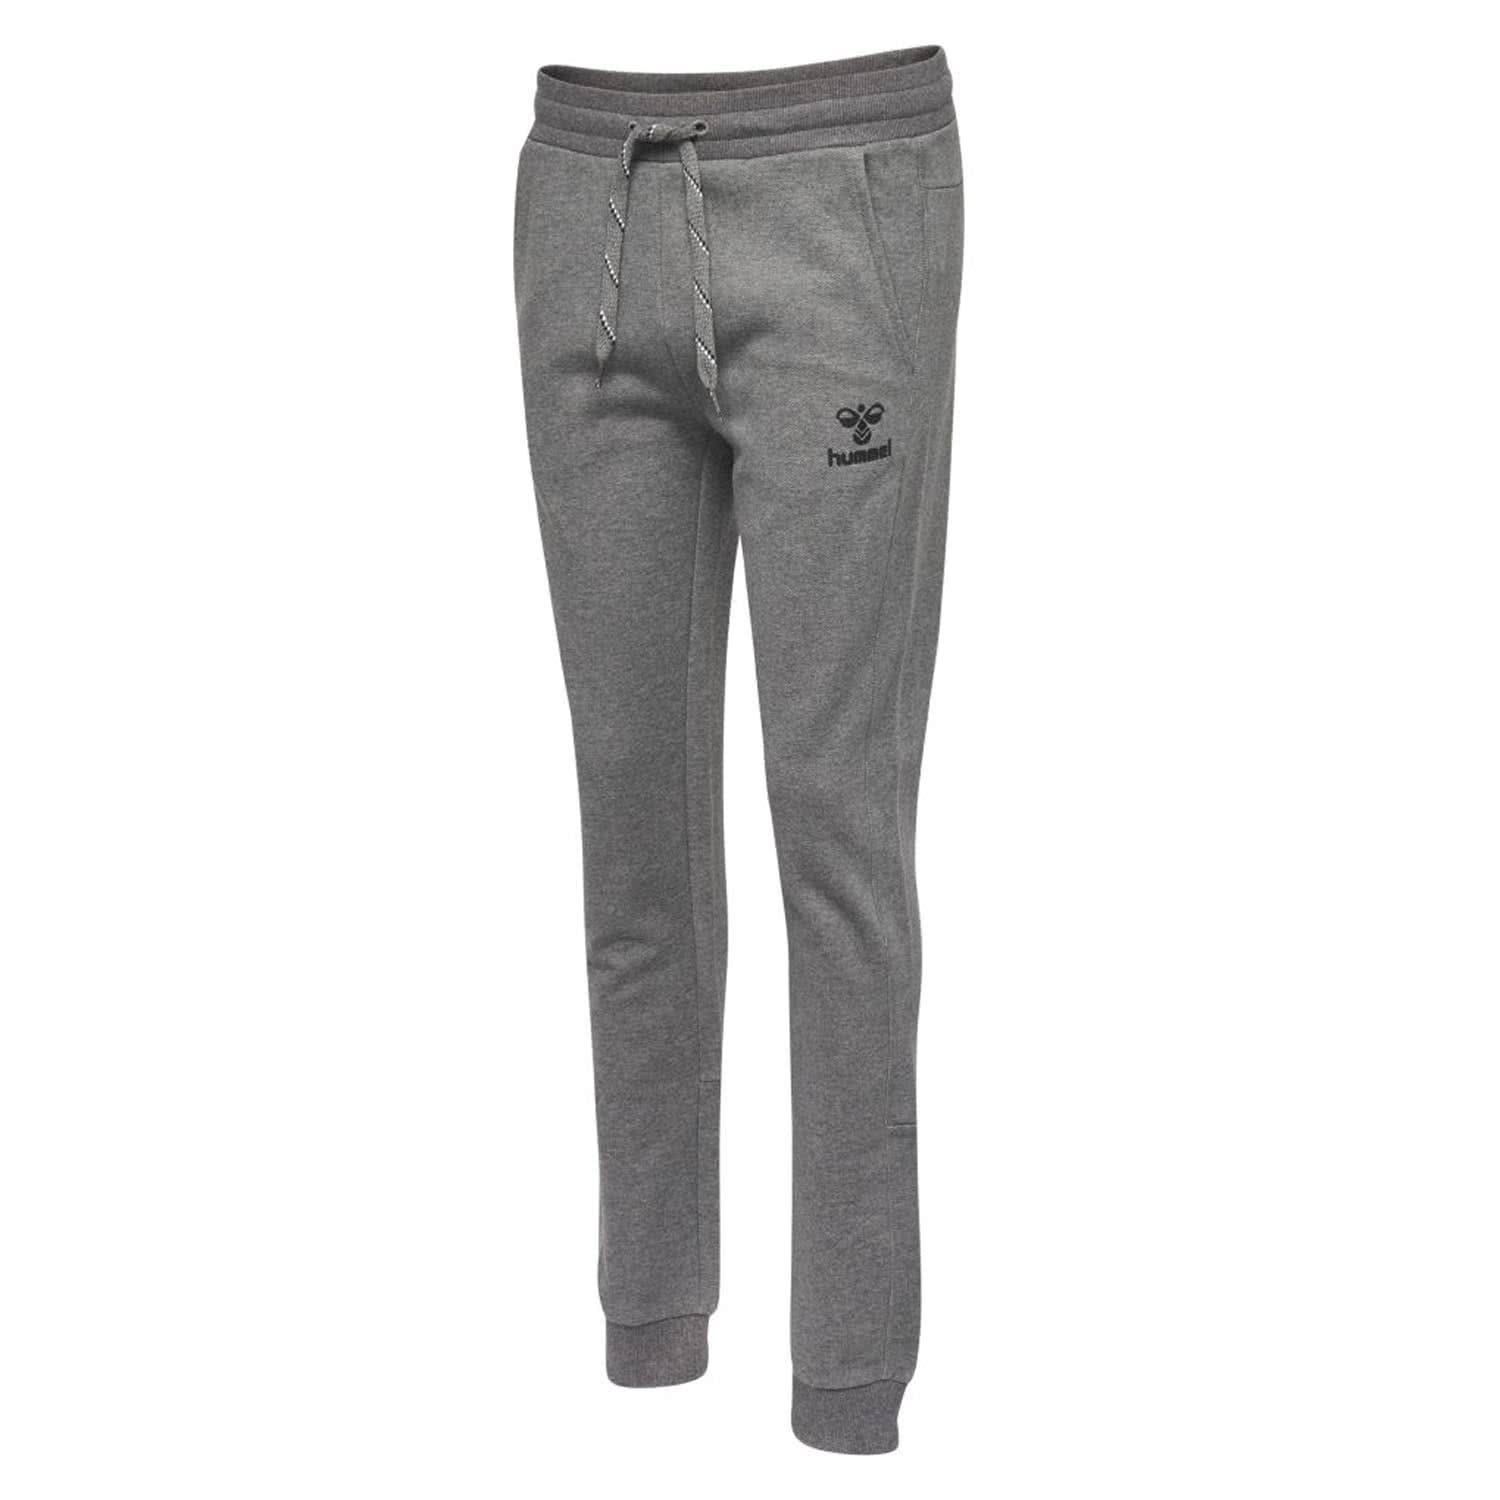 Hummel Damen Trainingshose LEISURELY PANTS 200439